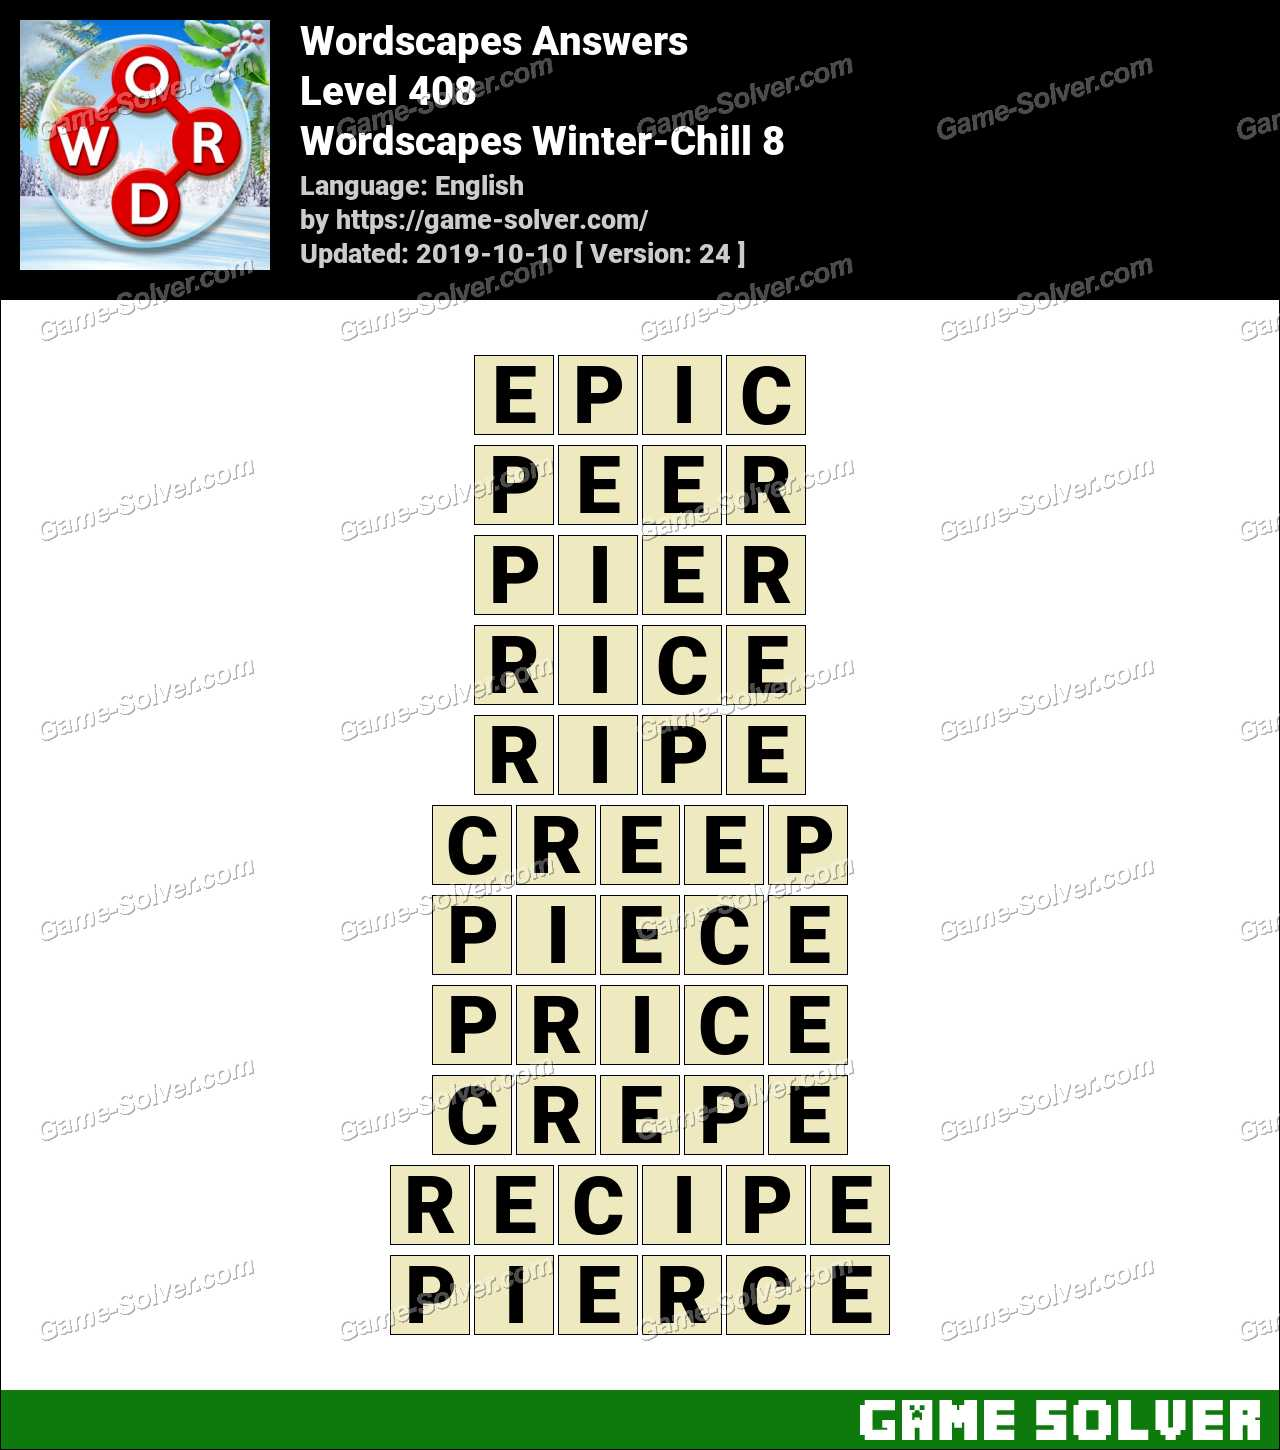 Wordscapes Winter-Chill 8 Answers